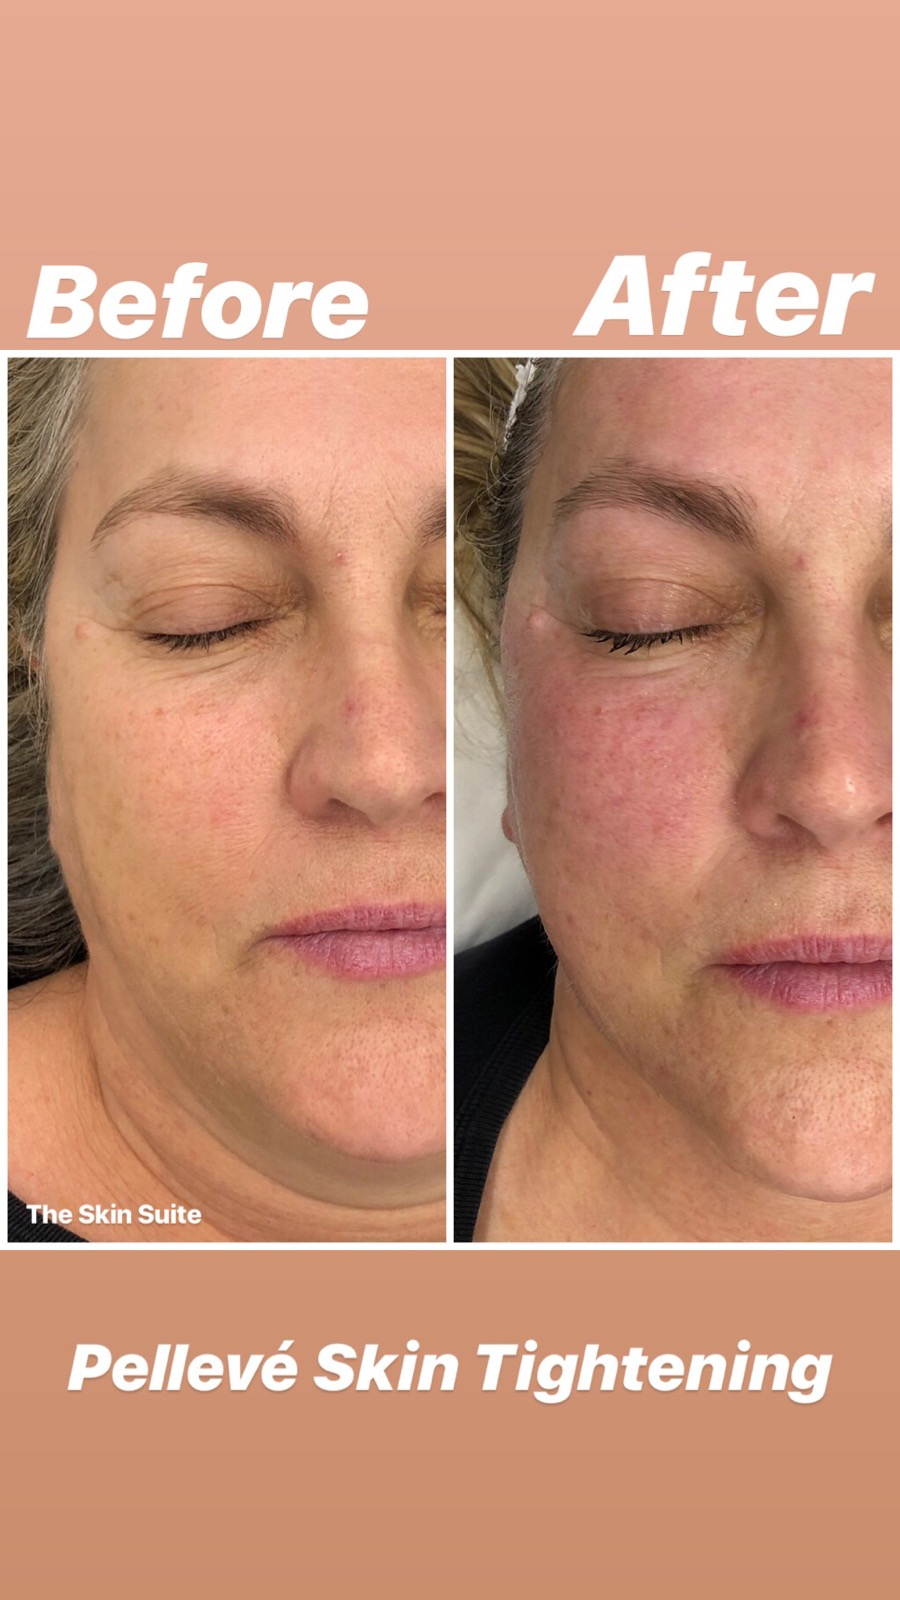 Pelleve treatment before and after The Skin Suite Brisbane Australia.jpg